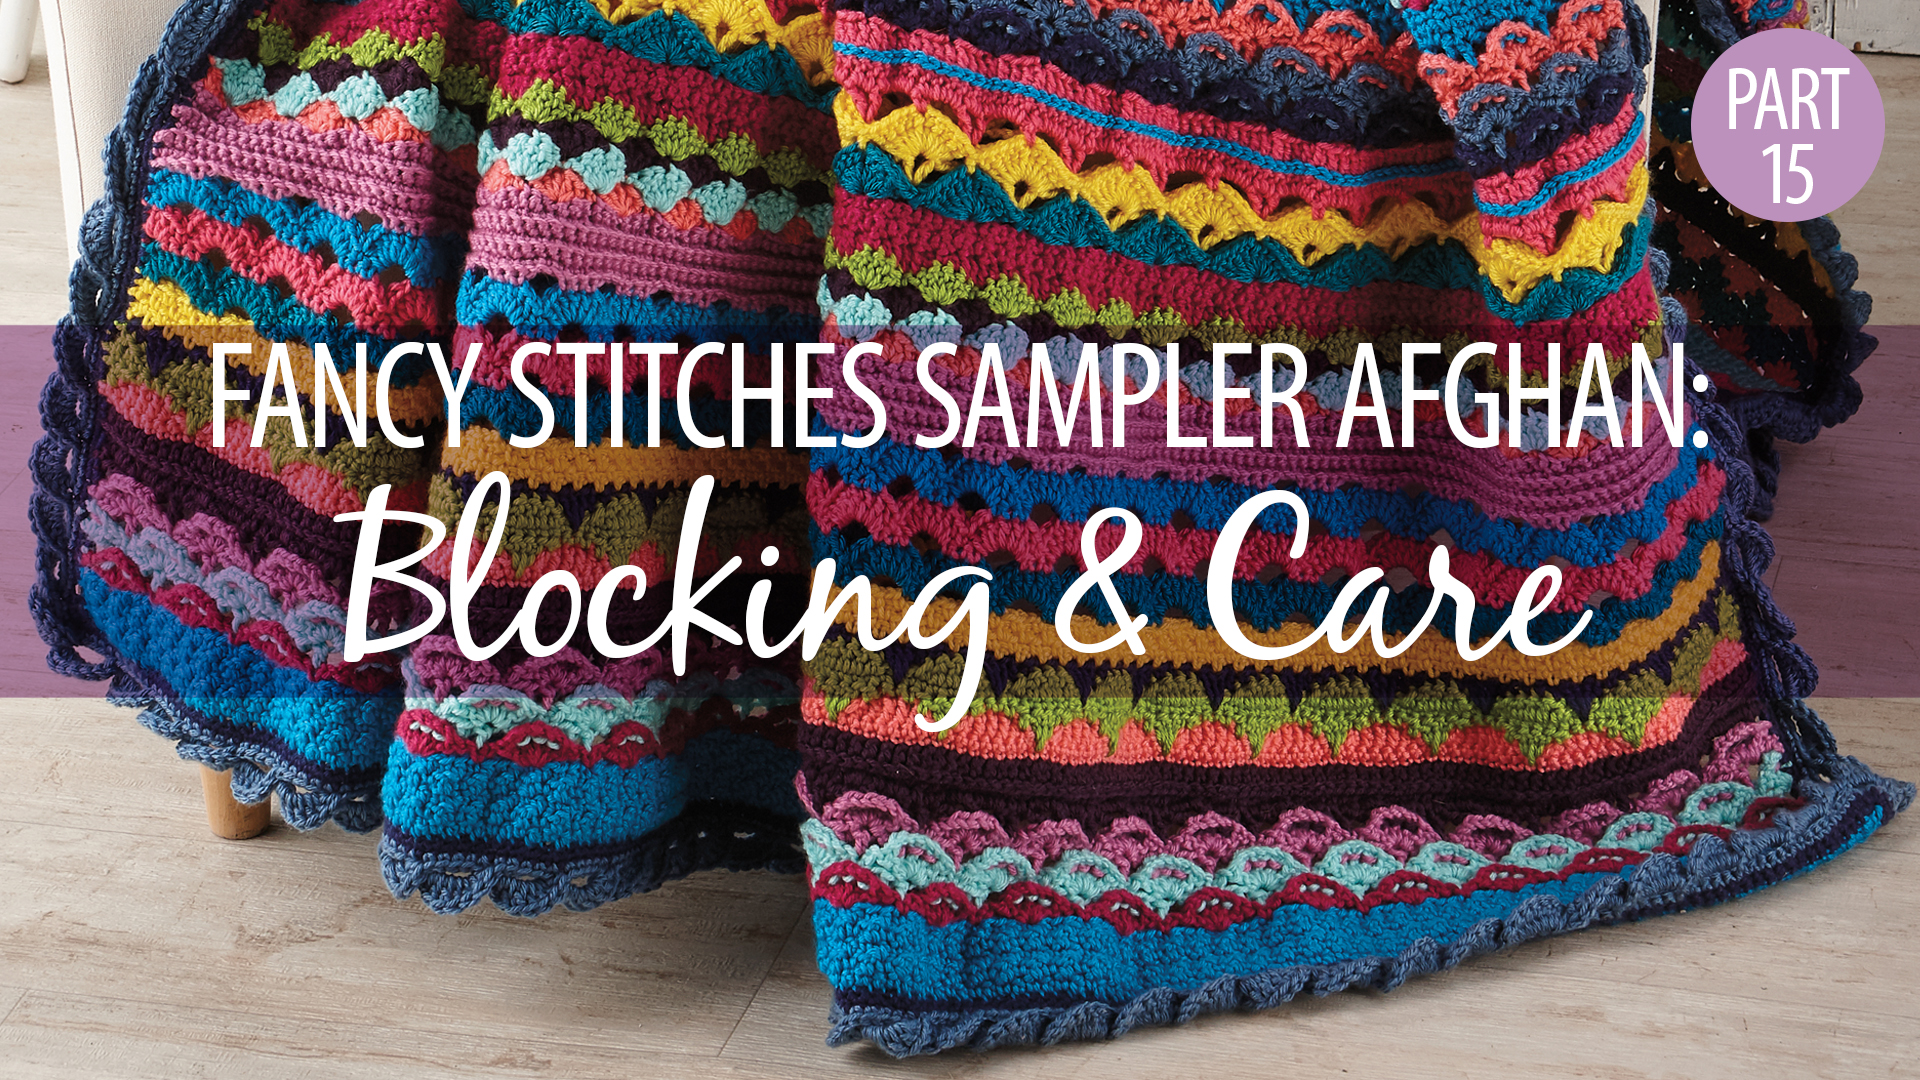 Crochet Skill Builders: Fancy Stitches Sampler Afghan Part 15: Blocking & Care